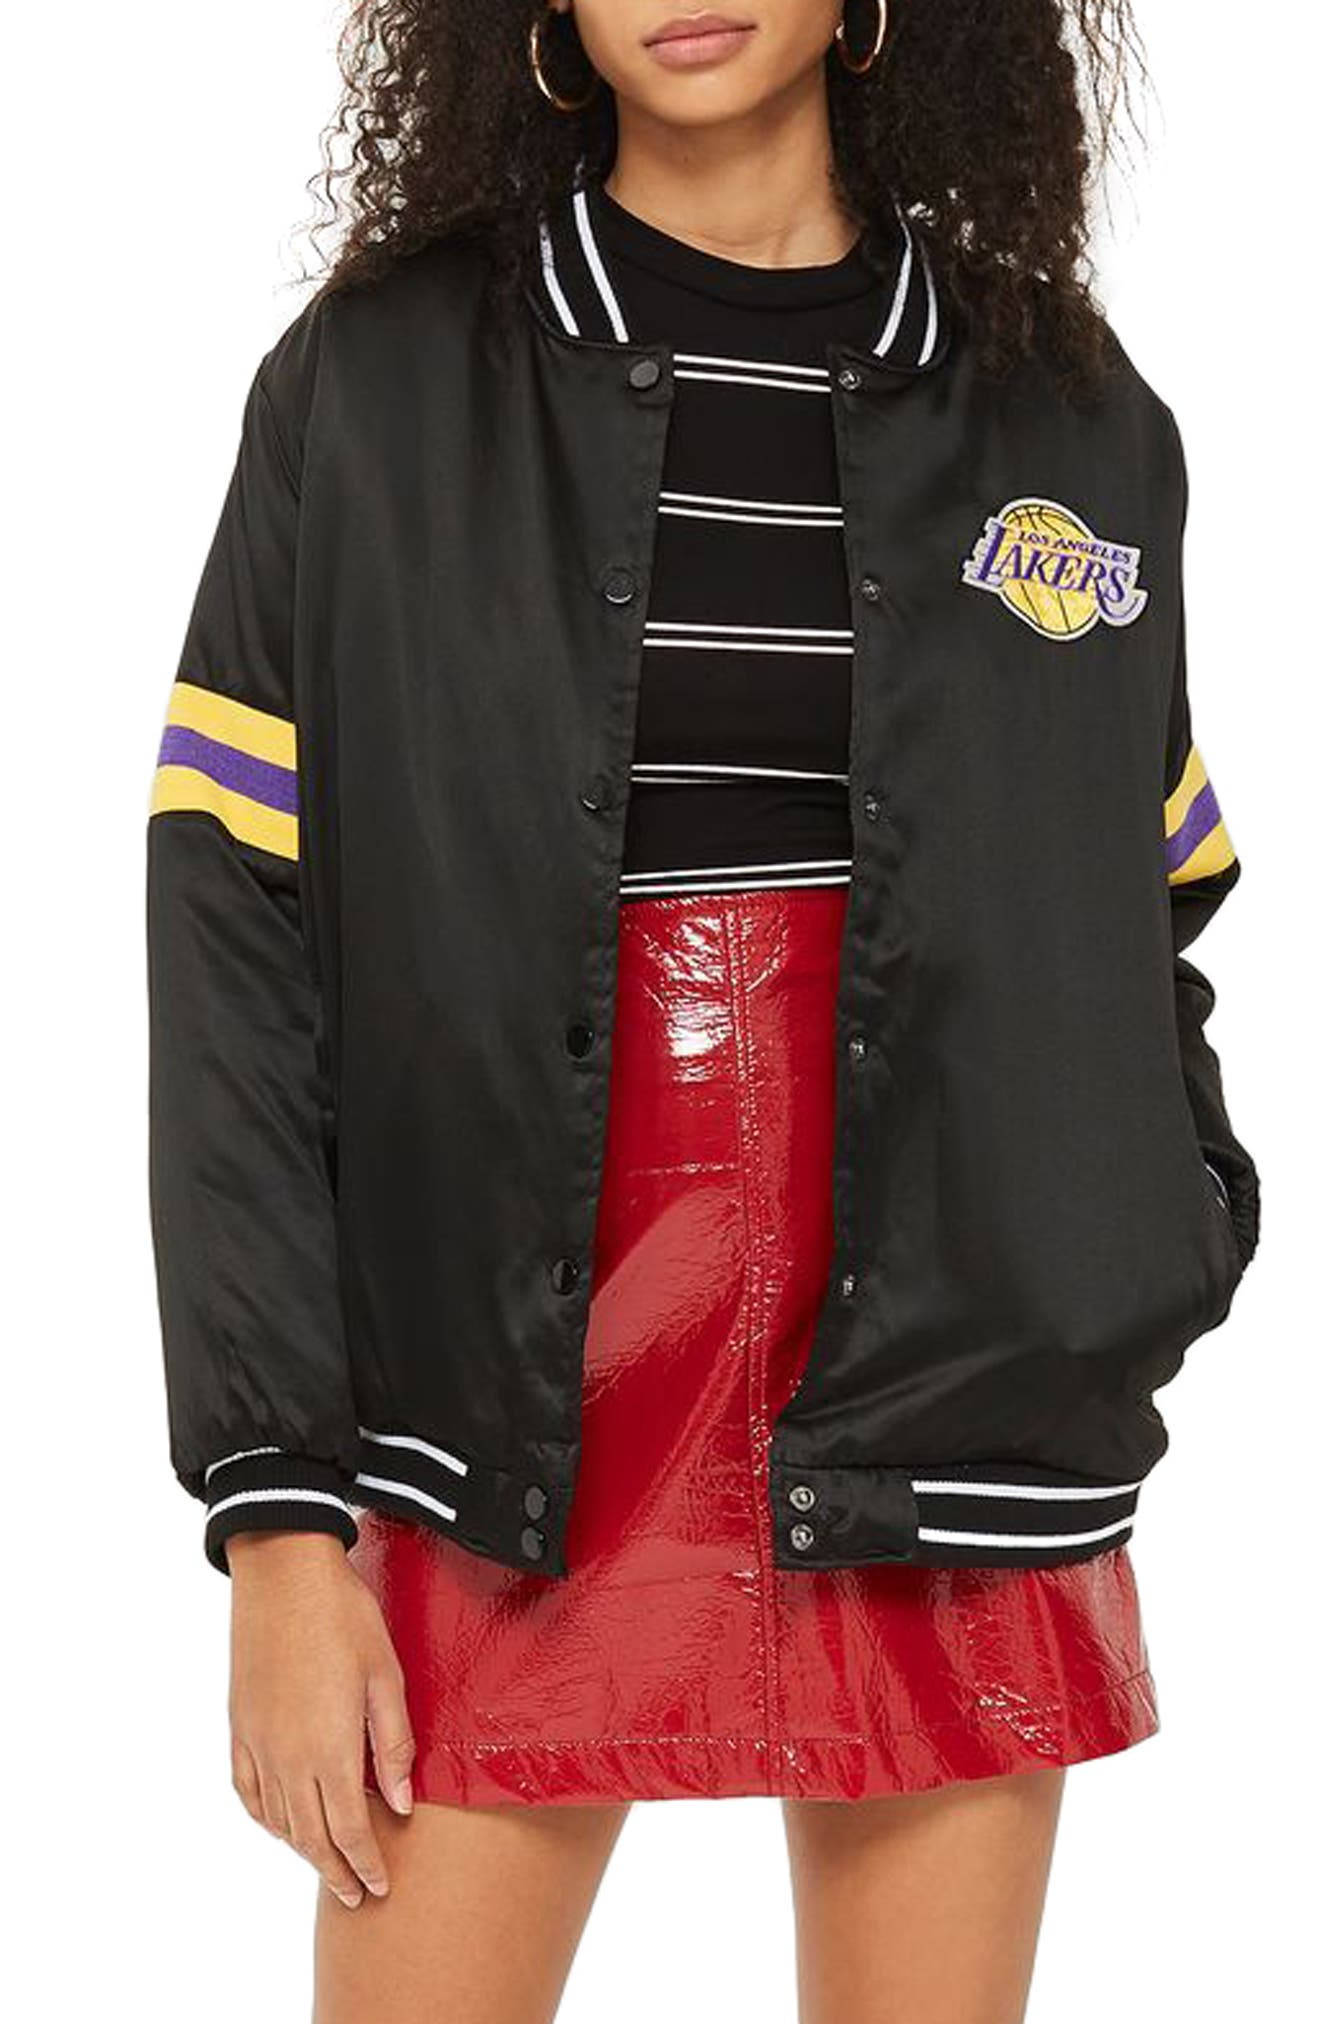 Topshop x UNK Lakers Bomber Jacket